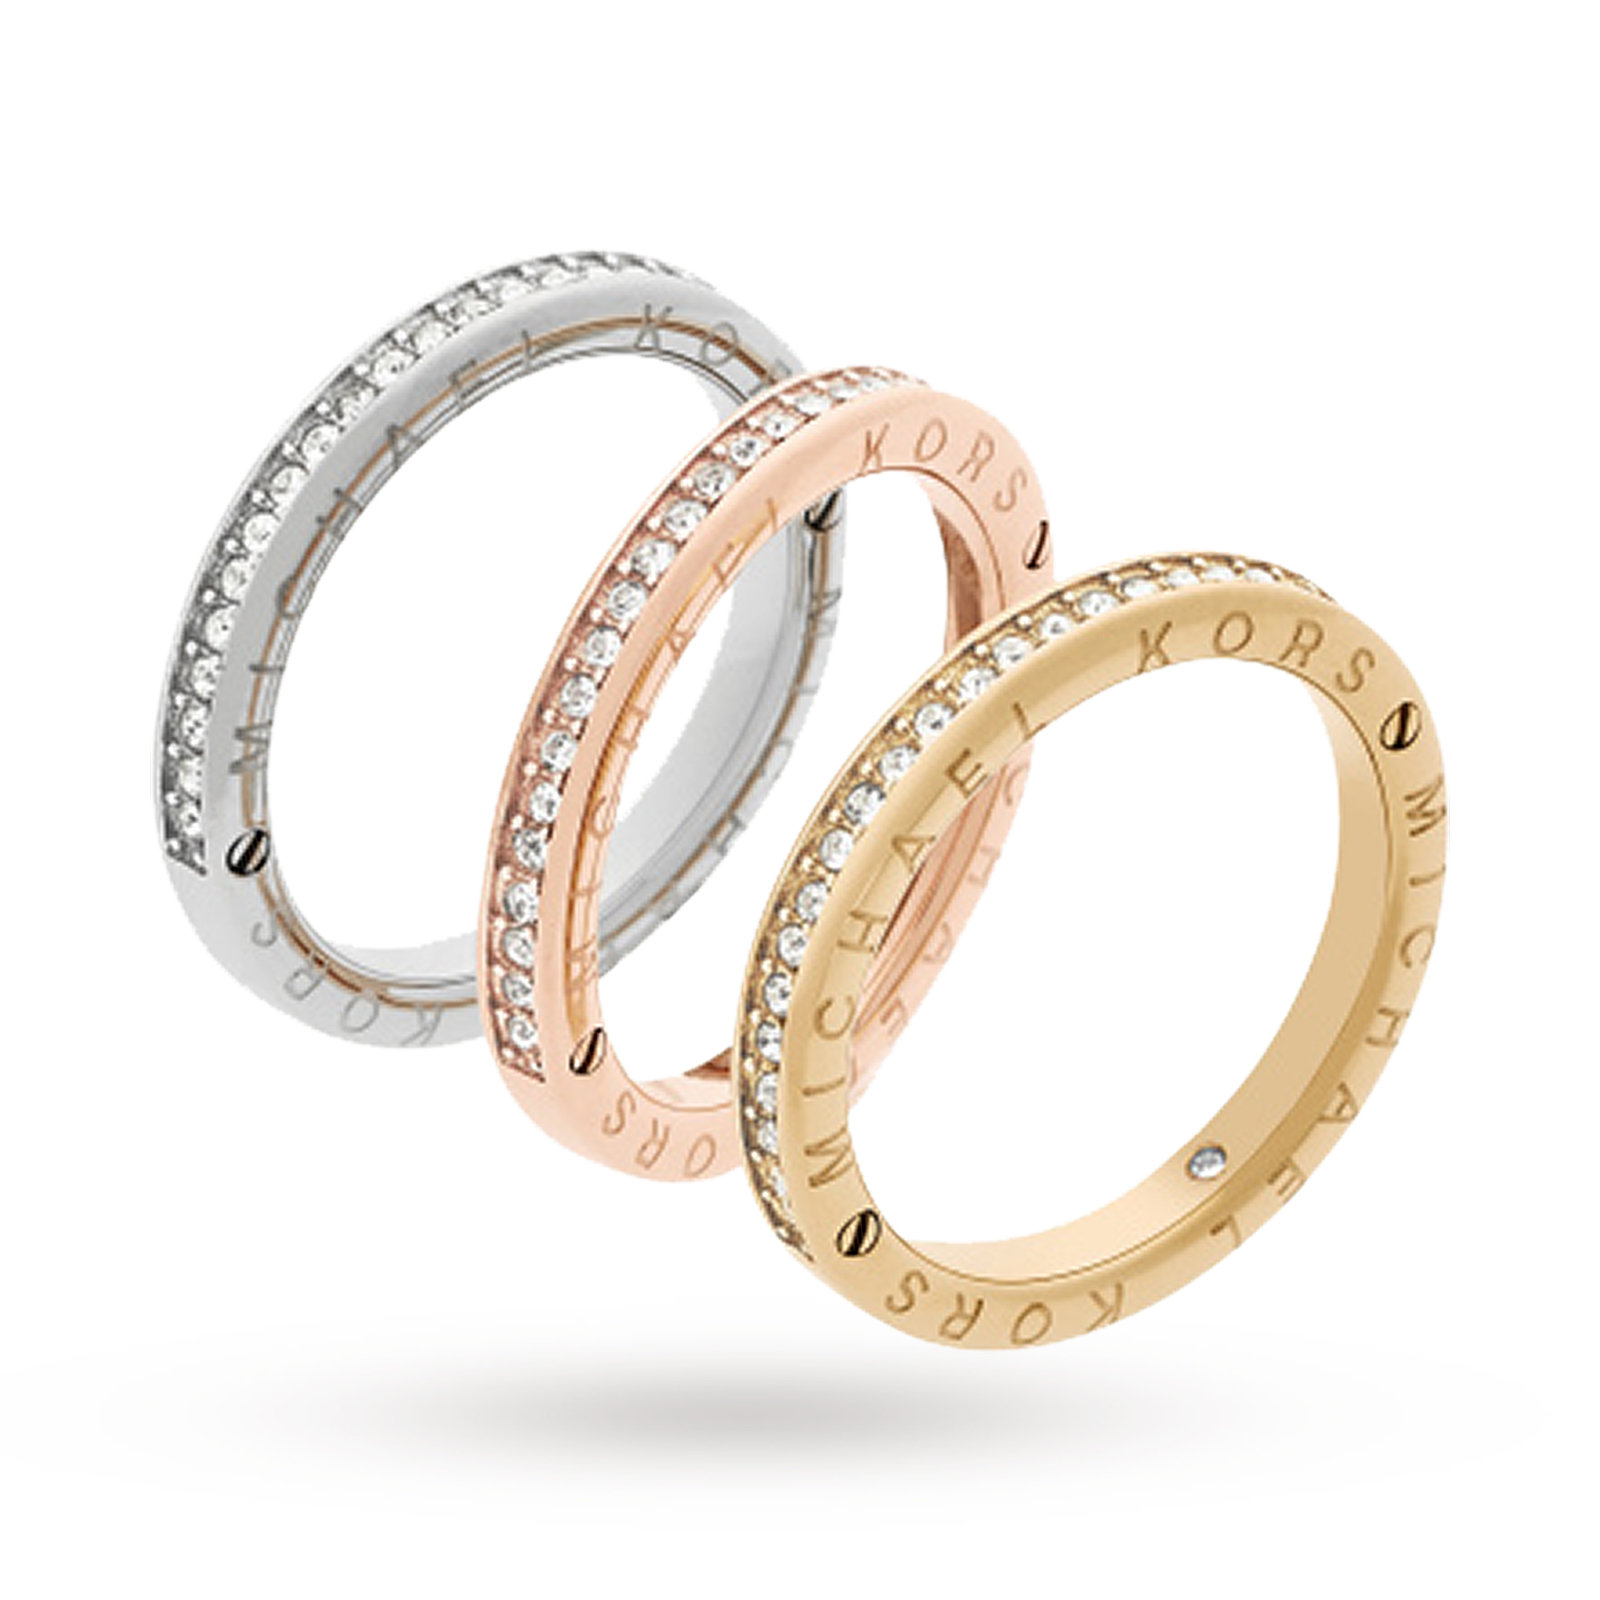 Michael Kors Three Coloured Stacking Ring Size L 5 Micheal Wedding